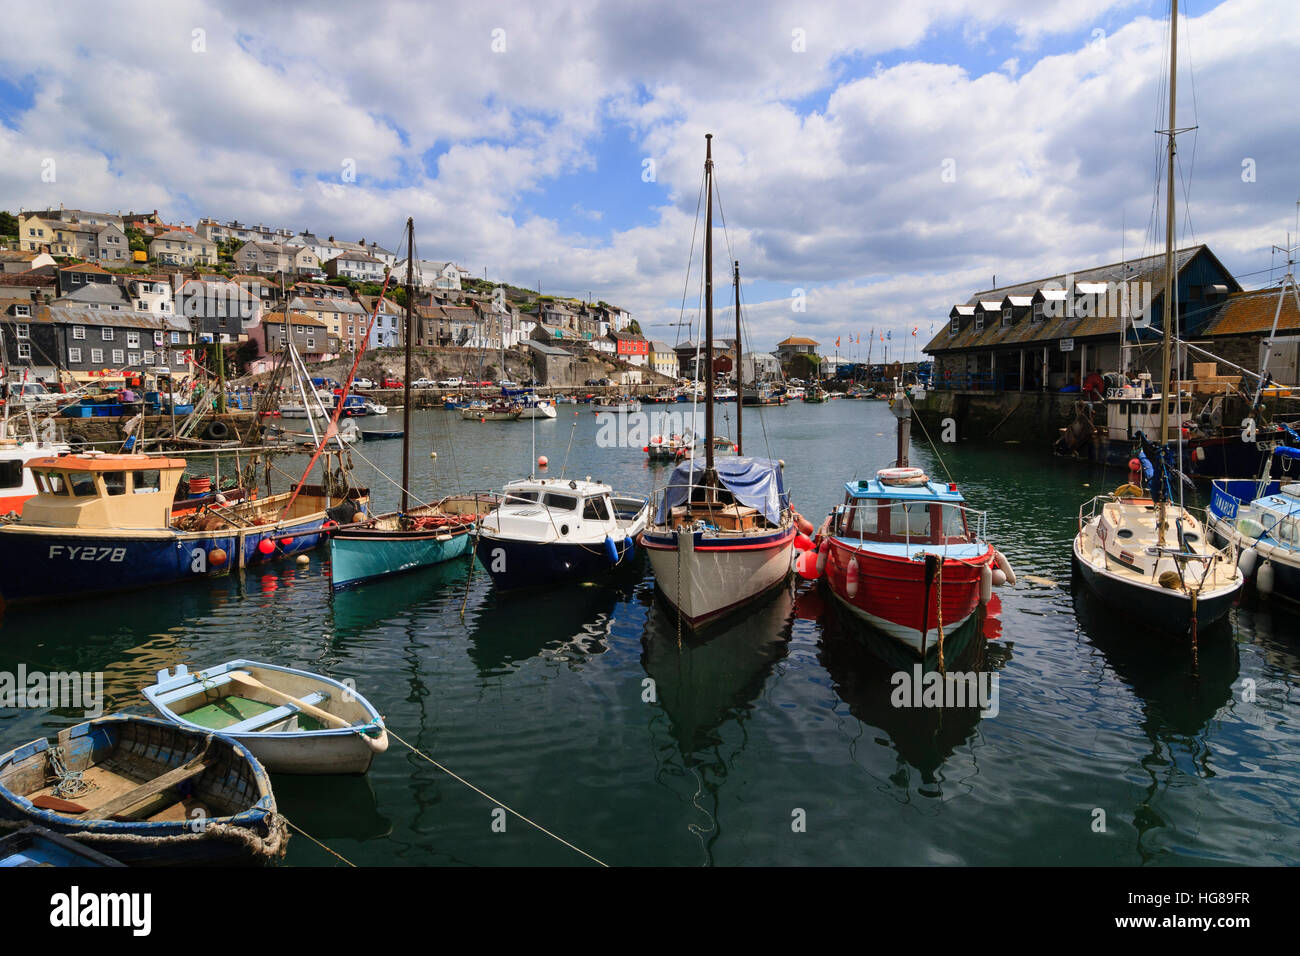 fishing-boats-and-dinghies-in-the-harbou